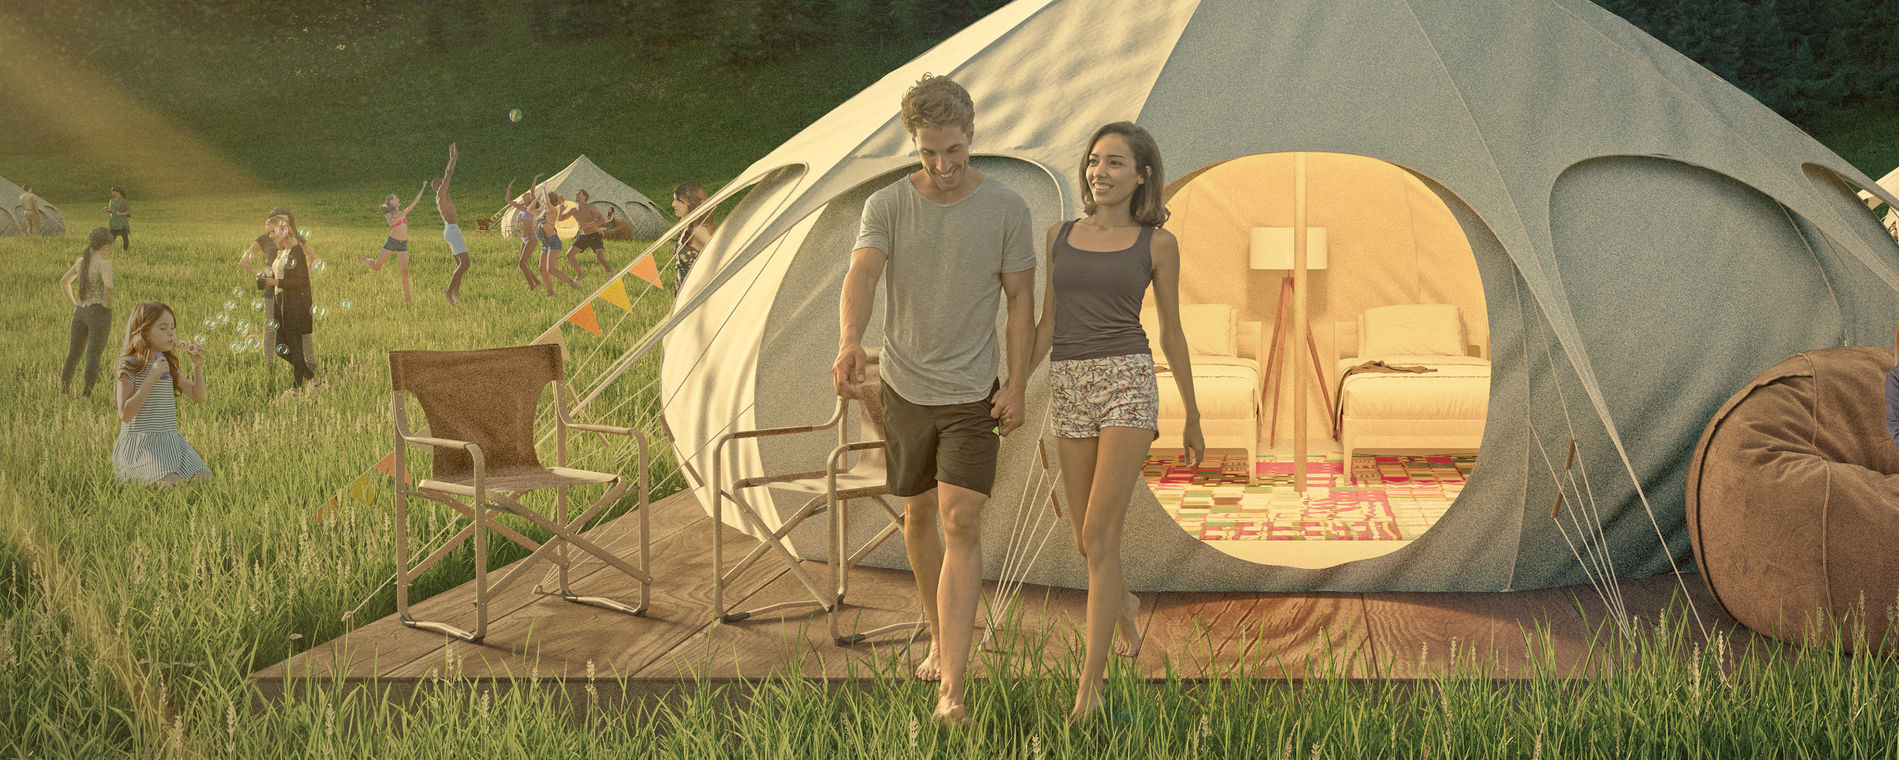 Erstes TCS Pop-Up Glamping